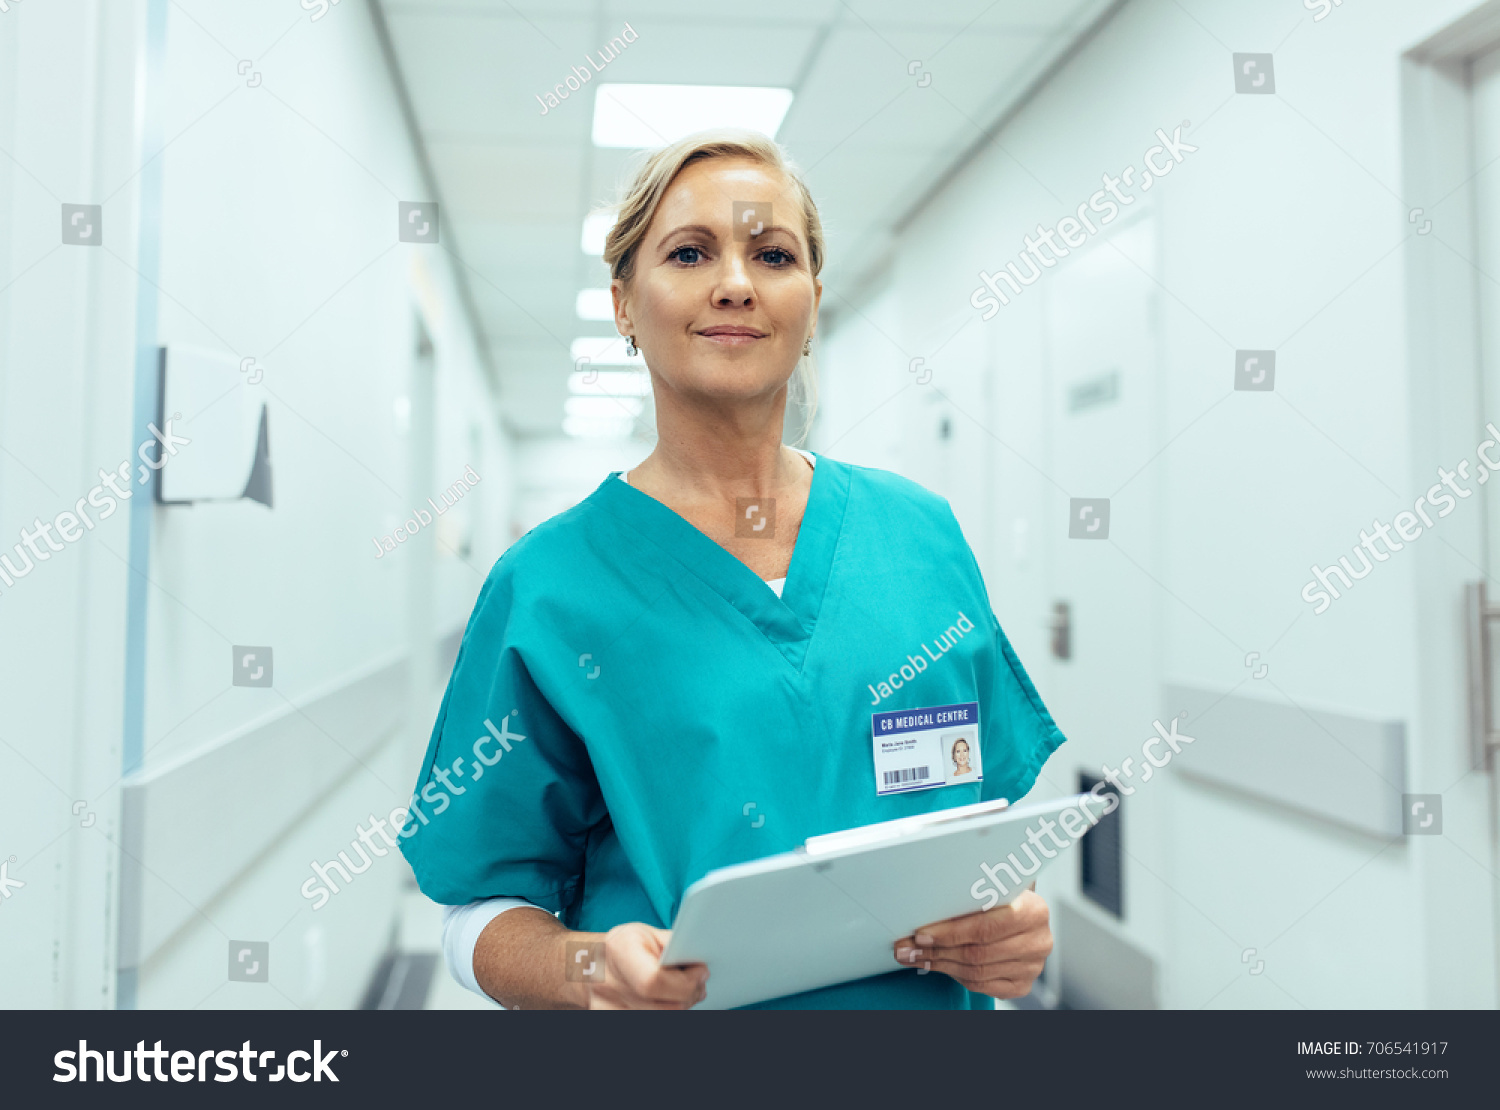 working in healthcare